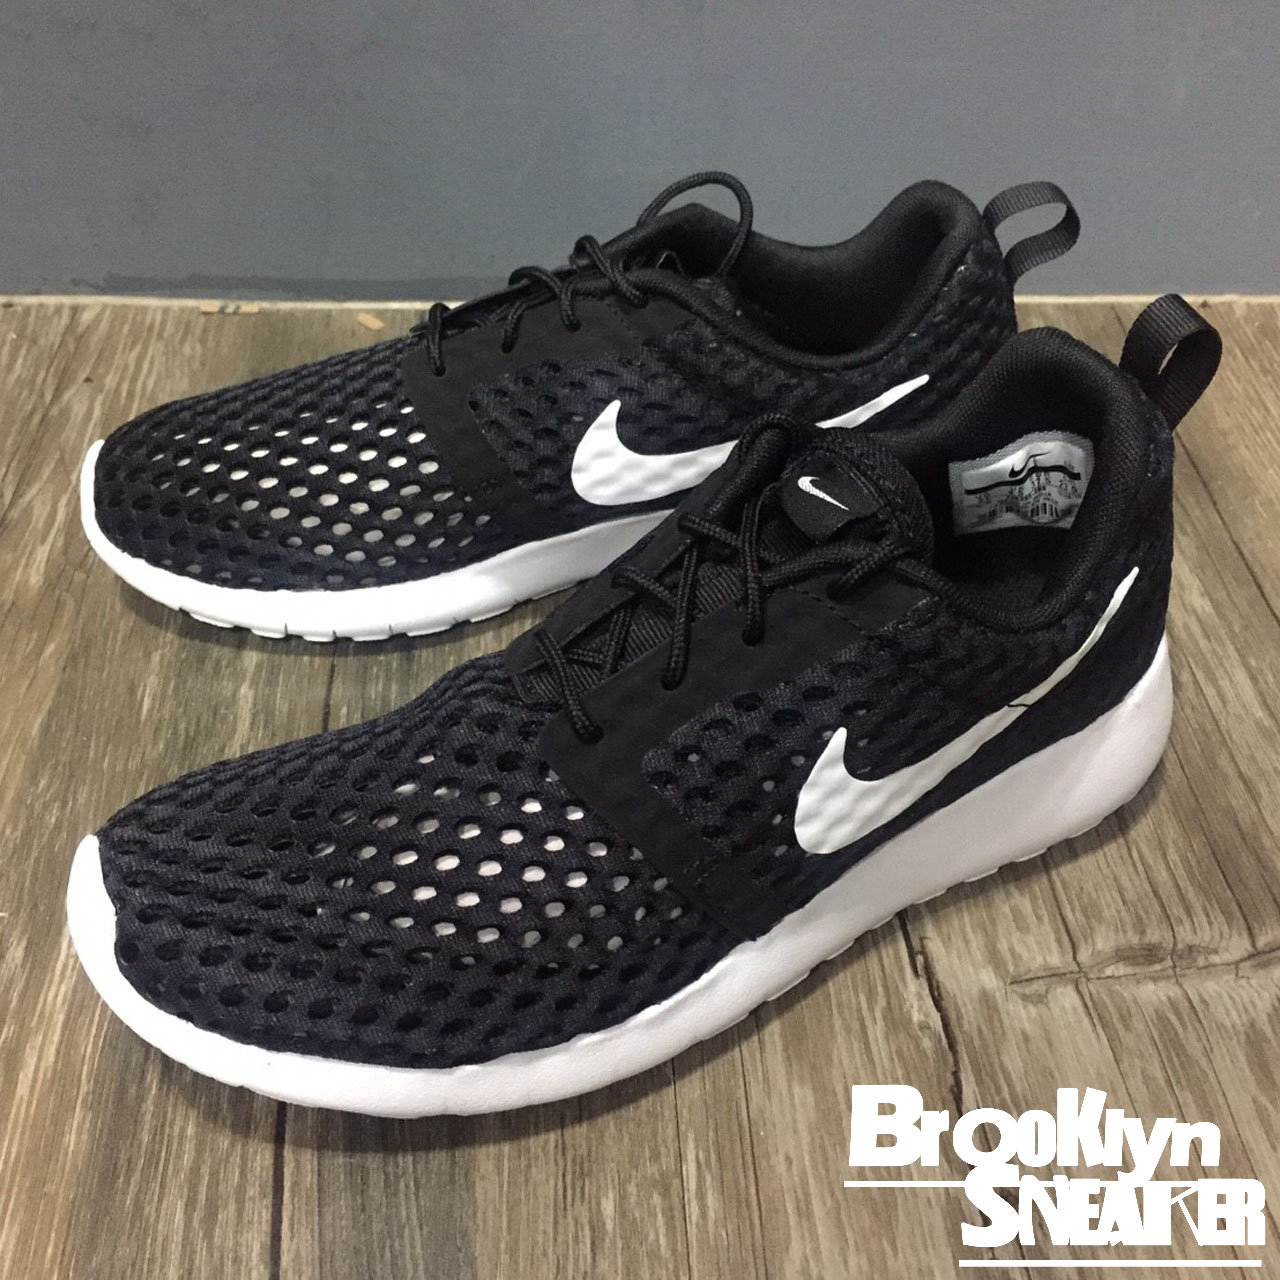 Nike Roshe One Flight Weight GS大童鞋黑白透氣慢跑女布魯克林2017 5月705485-008